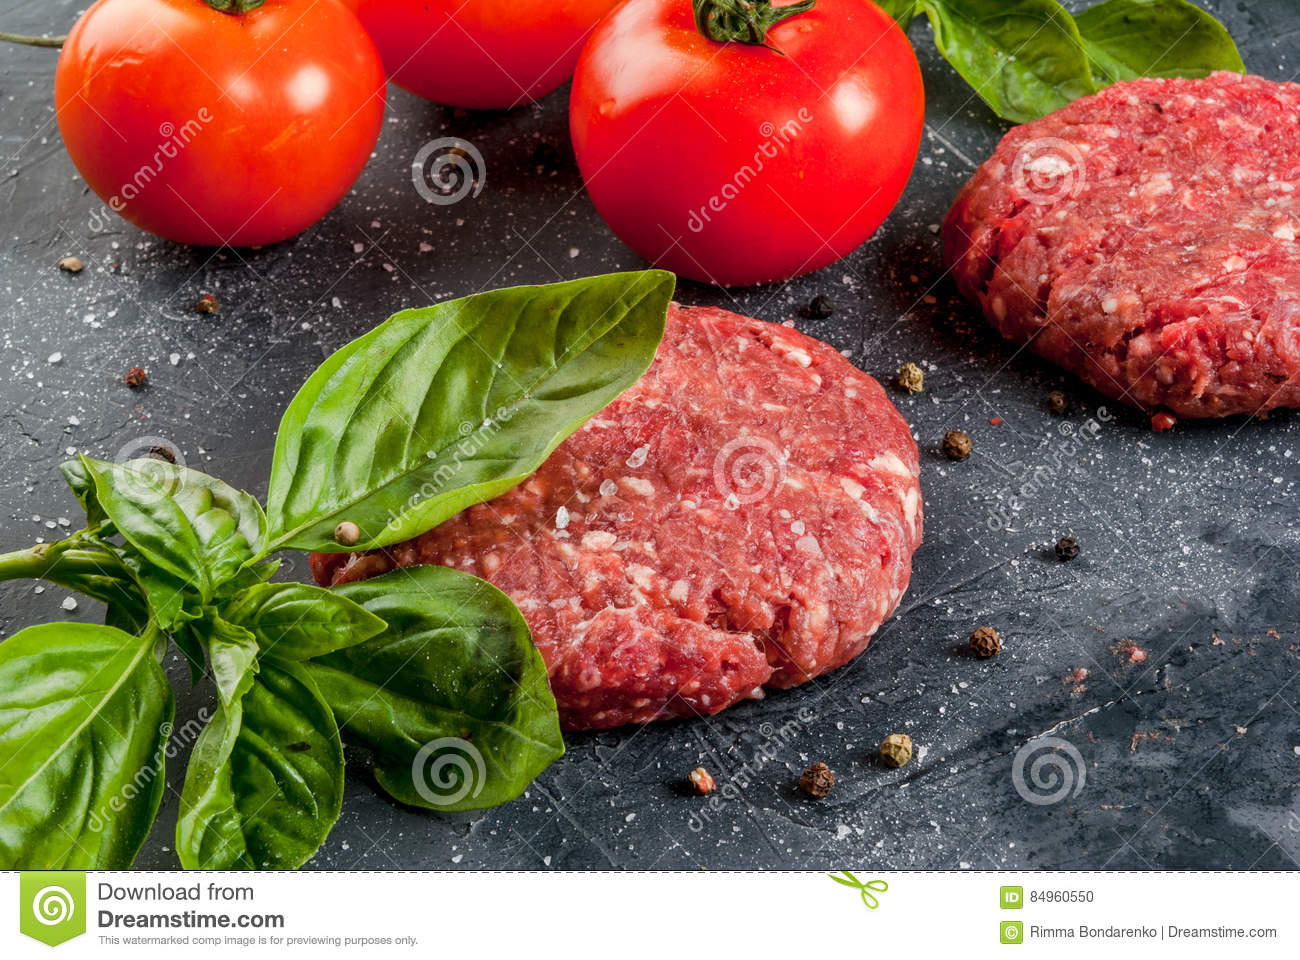 how to cook minced beef burgers